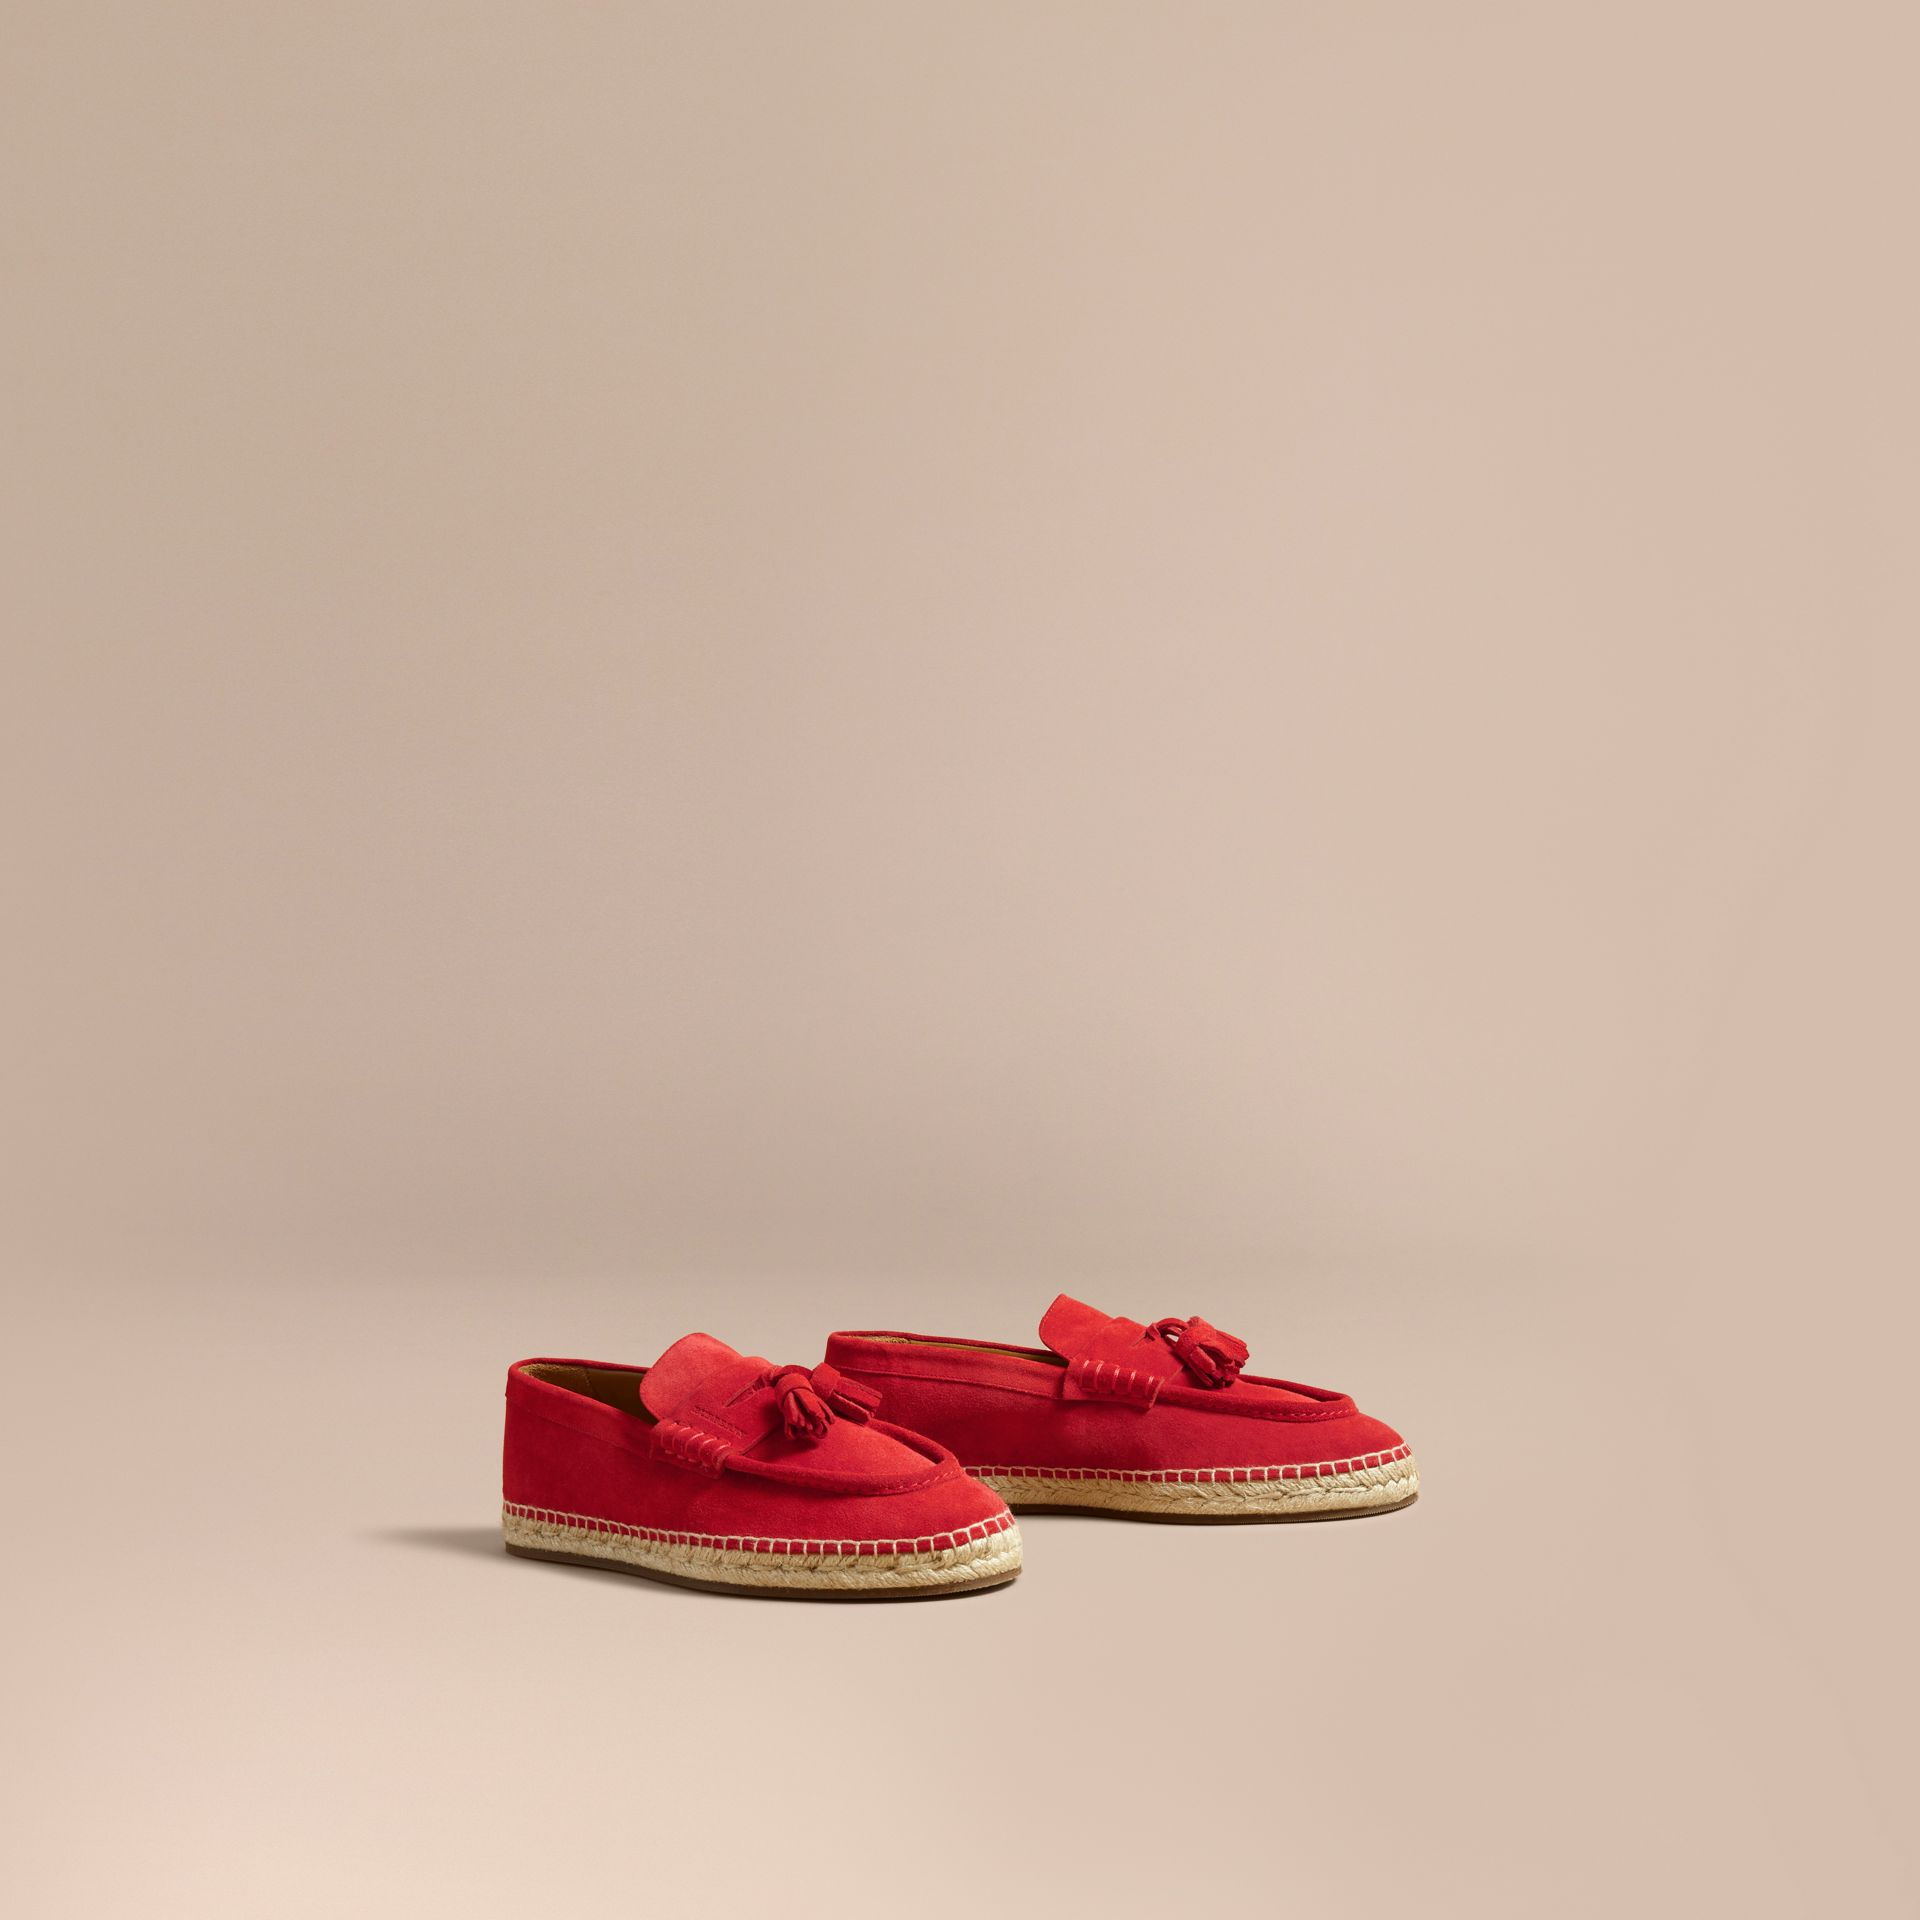 Tasselled Suede Espadrille Loafers Bright Rowanberry - gallery image 1